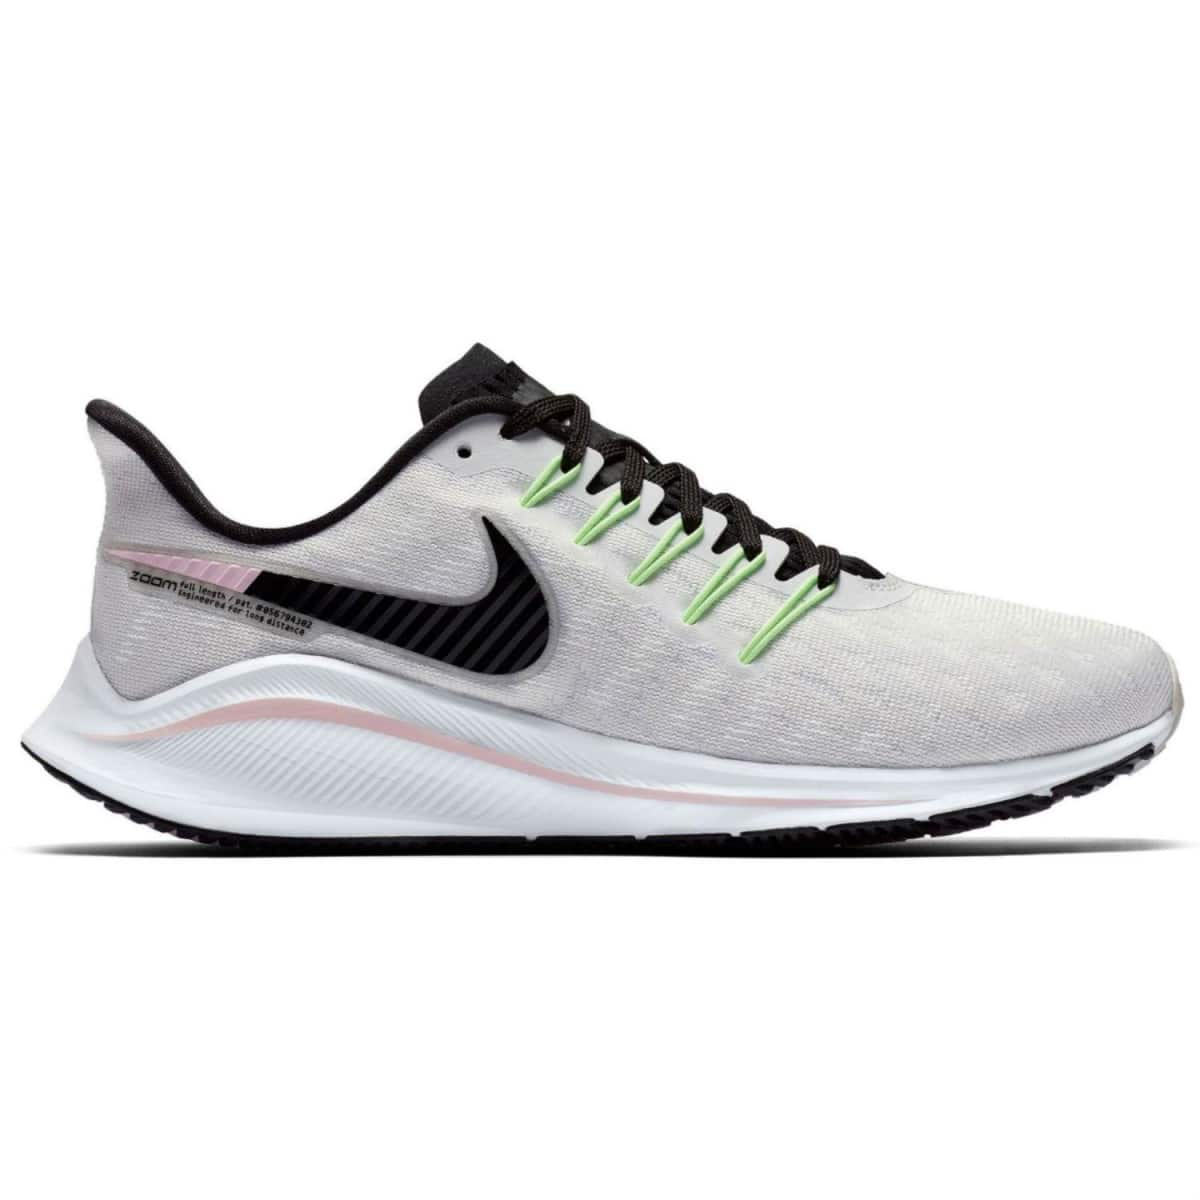 a68b951a5d438 Nike Shoes Nike Womens Zoom Condition Tr Color PinkWhite